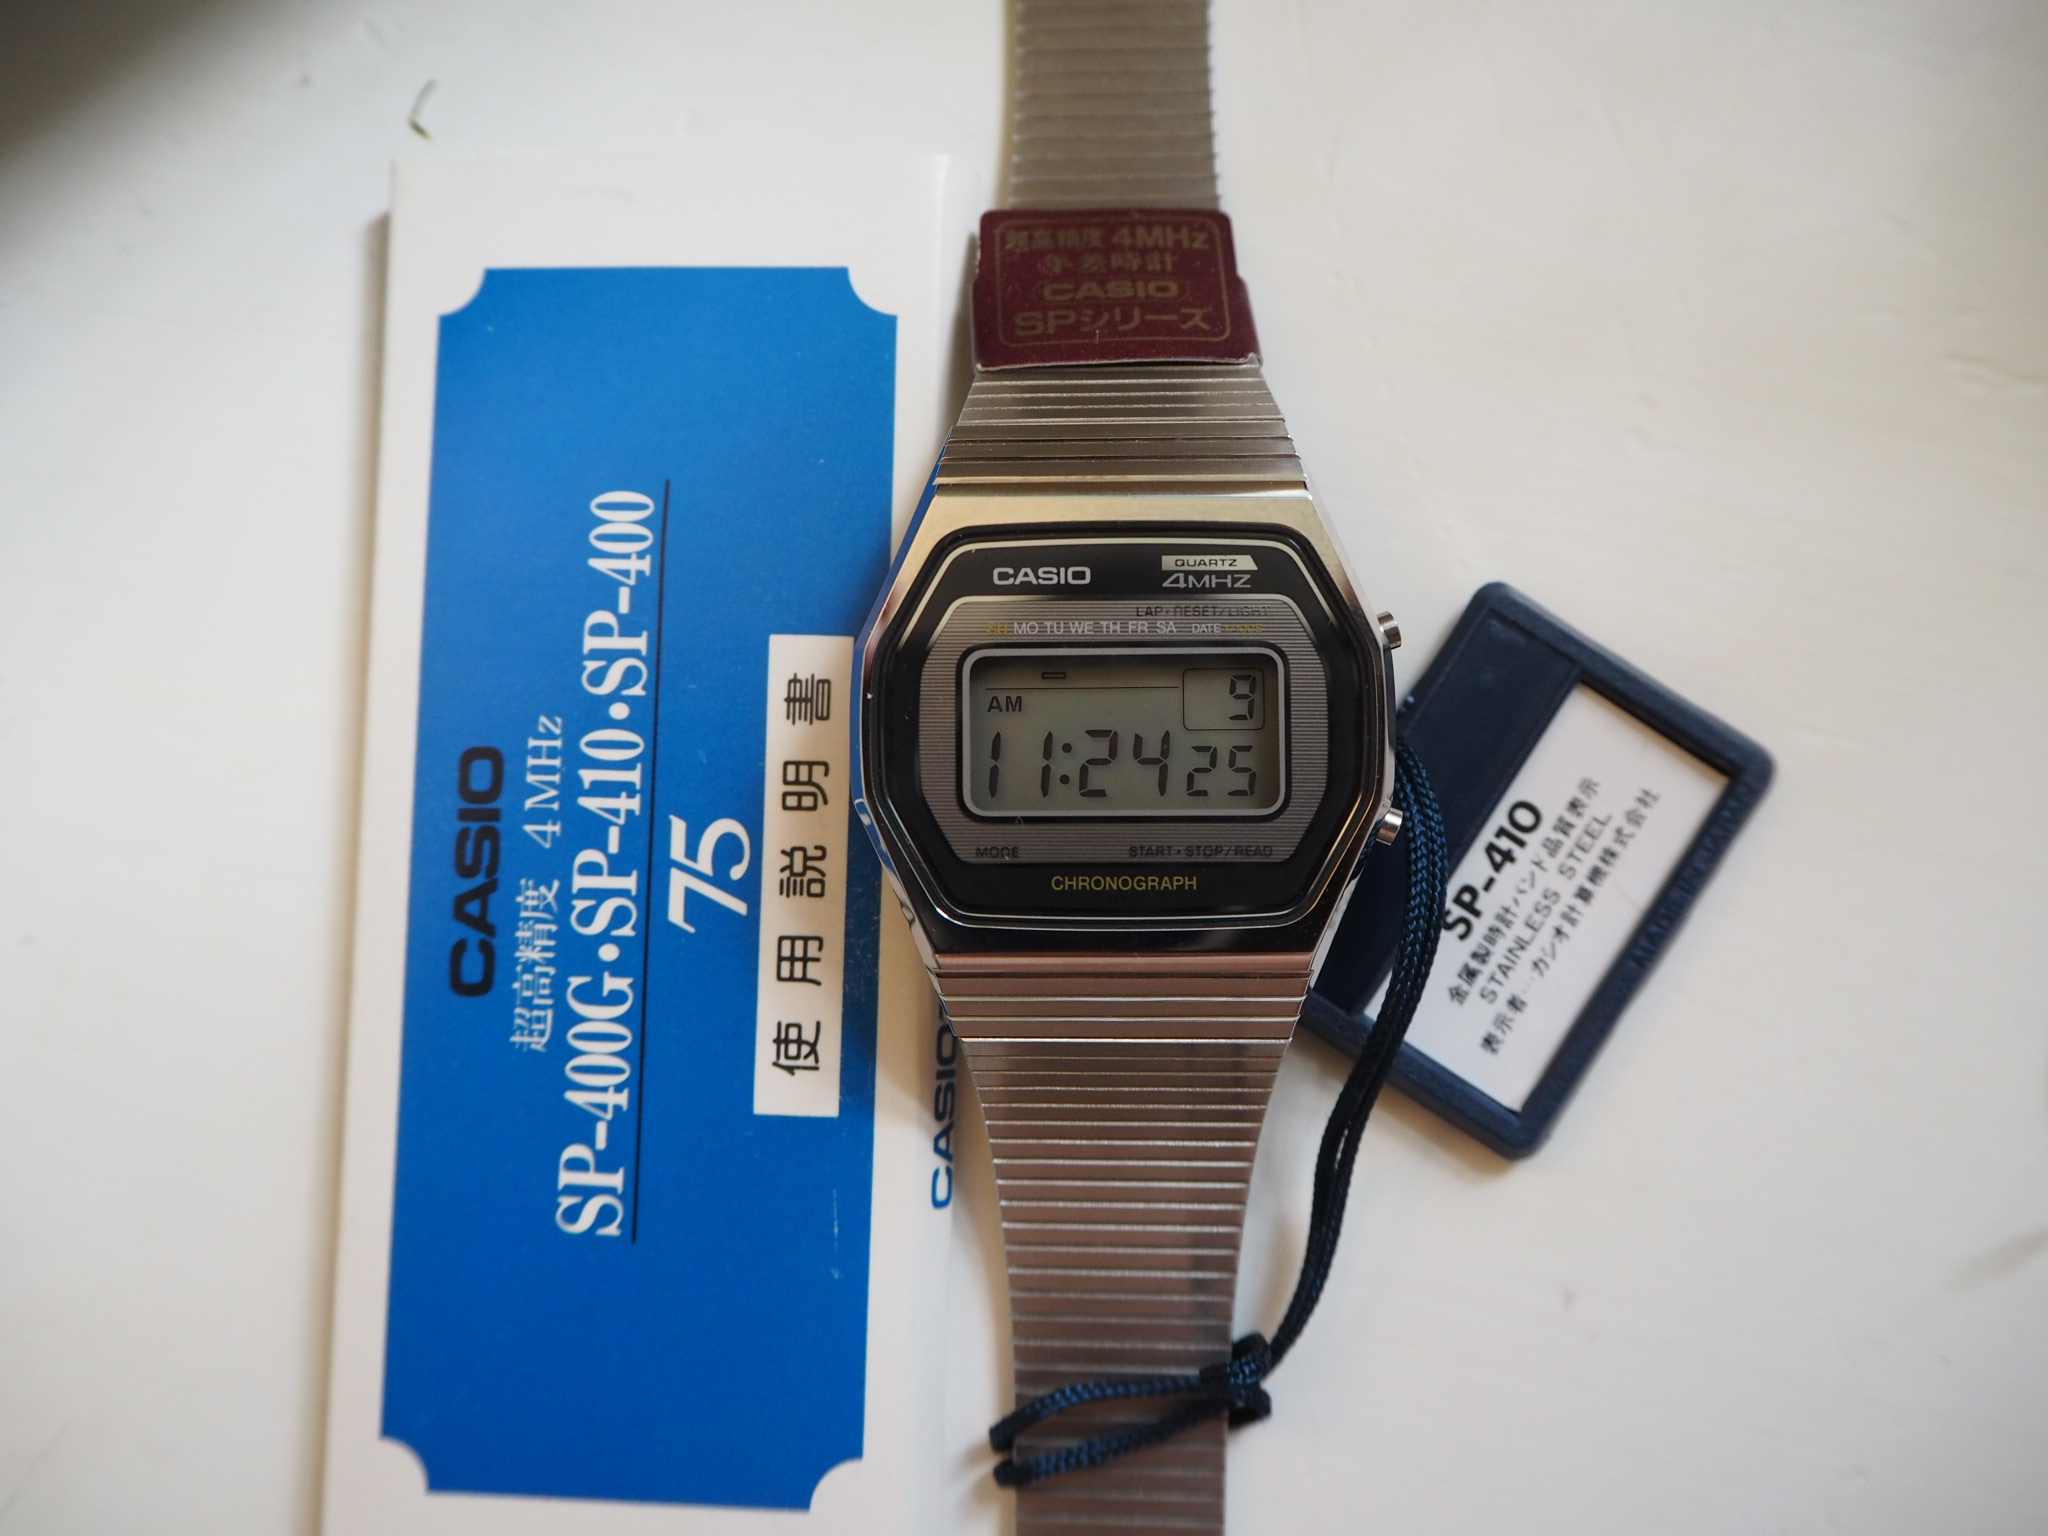 eebc0907542 DWF - The Digital Watch Forum • View topic - Looking for more info ...